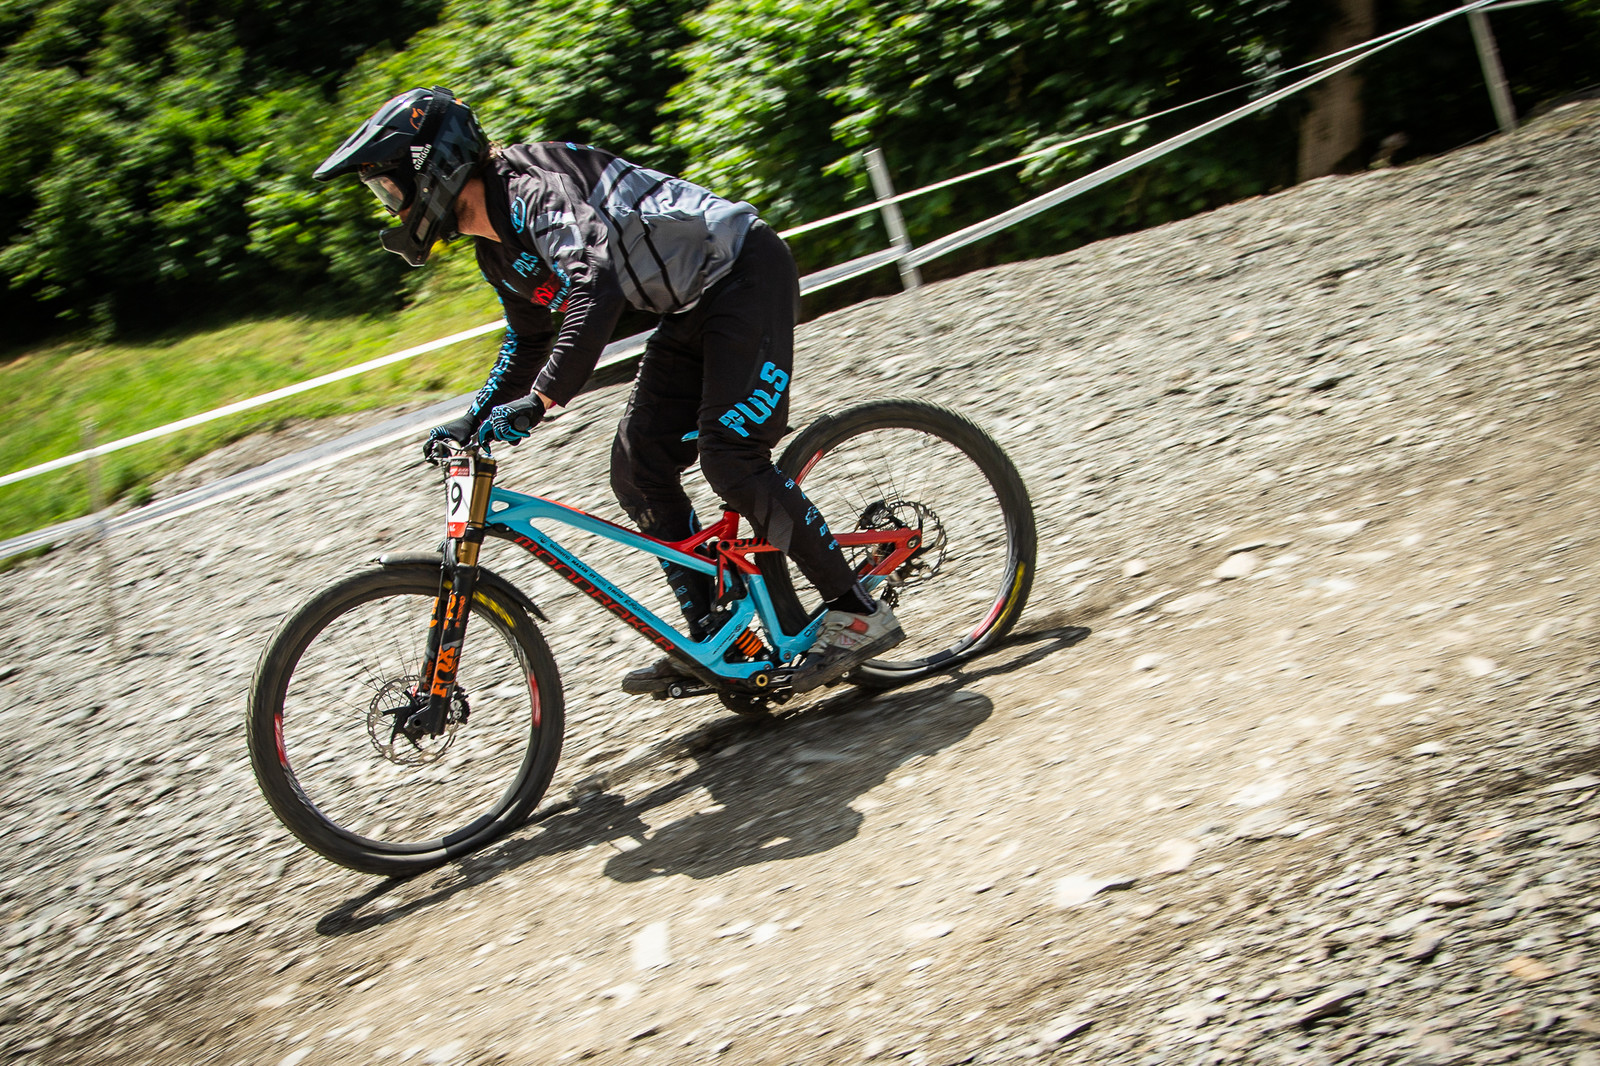 Mondraker Summum - G-Out Project - Andorra World Cup DH - Mountain Biking Pictures - Vital MTB